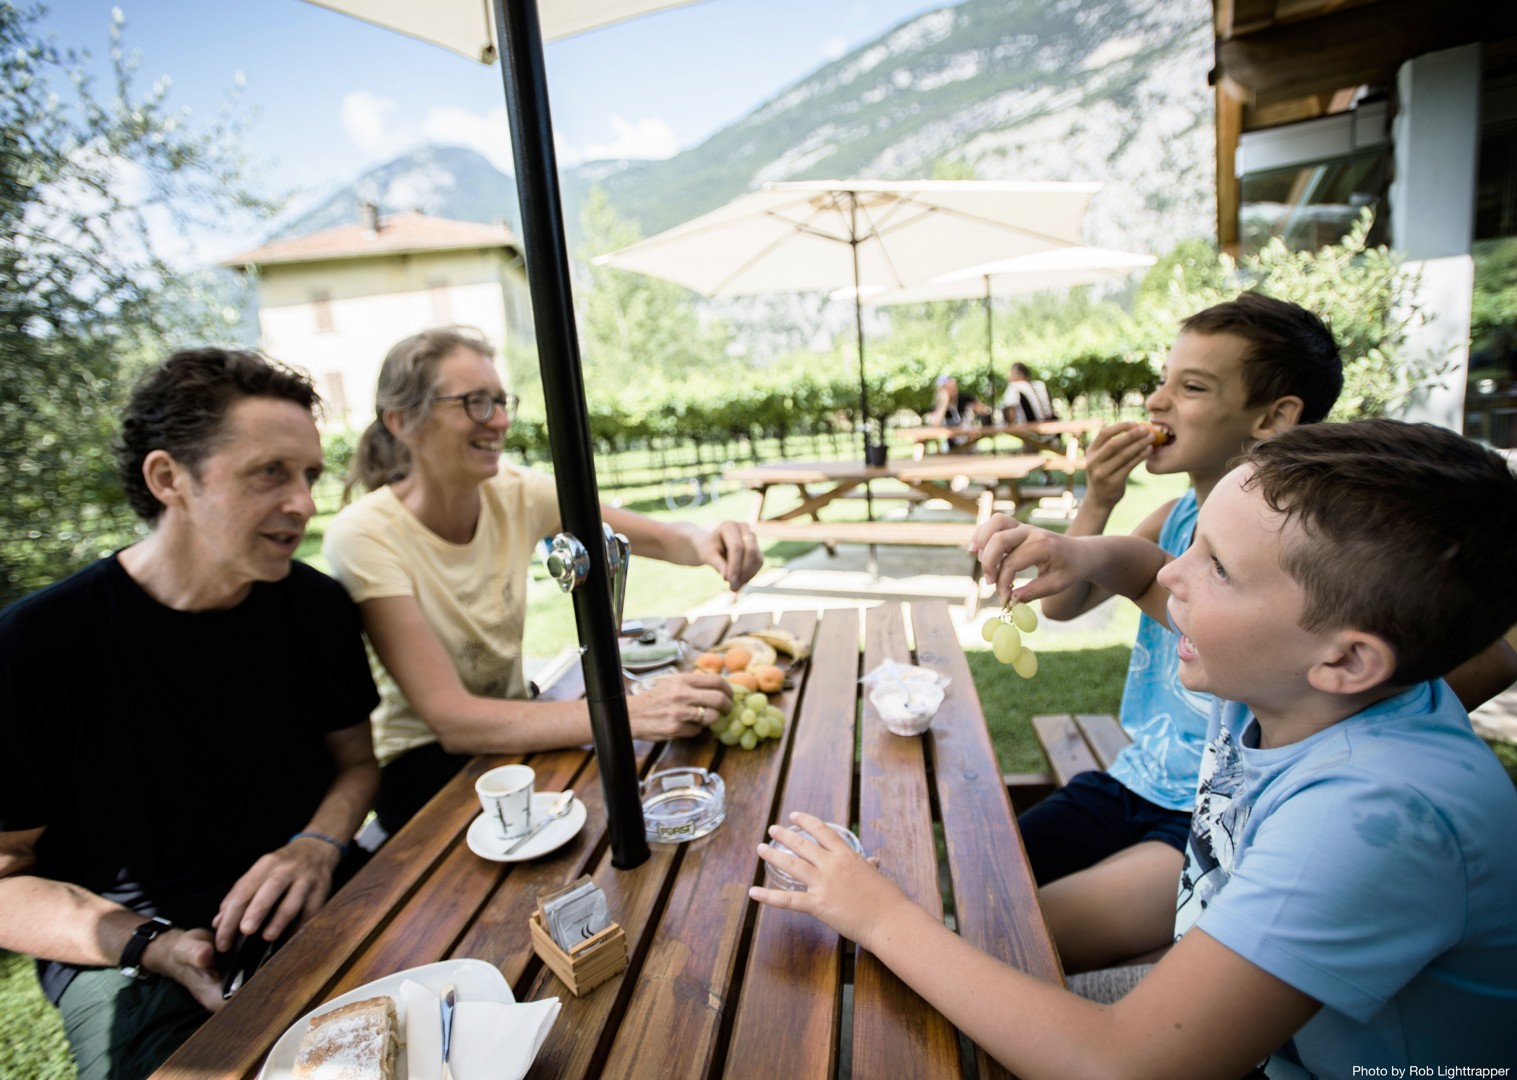 picnic-italy-lake-garda-family.jpg - Italy - Lake Garda Explorer - Self-Guided Family Cycling Holiday - Family Cycling